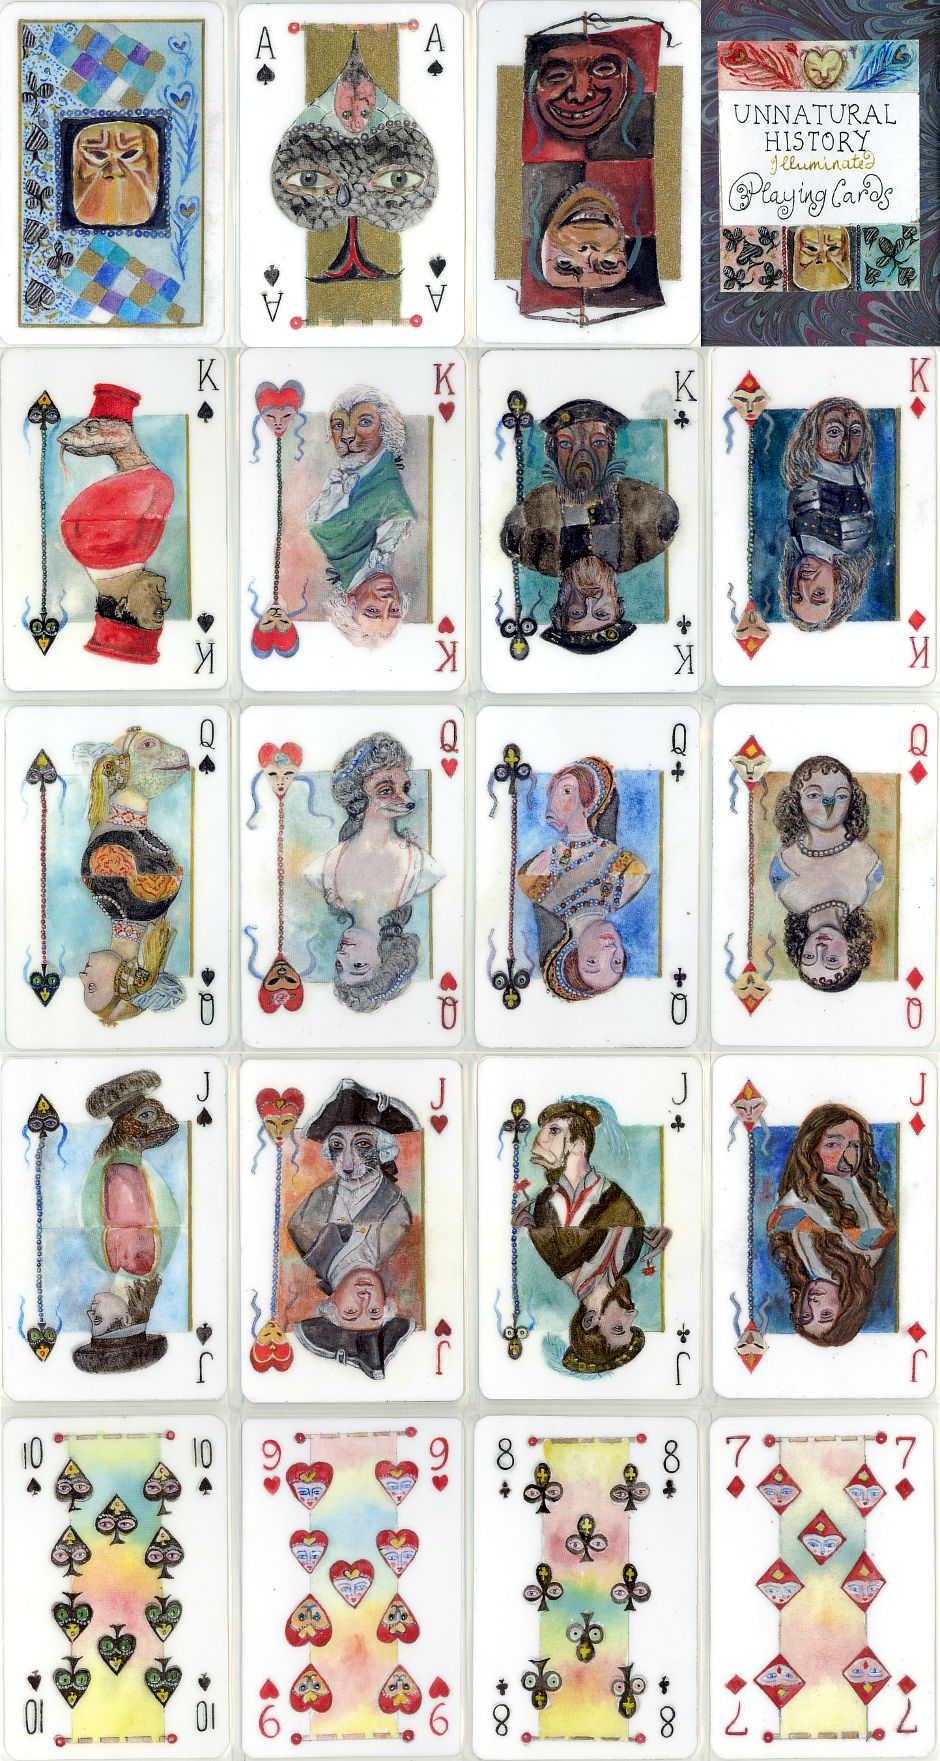 Unnatural History playing cards designed and hand-made by Shelley Fowles